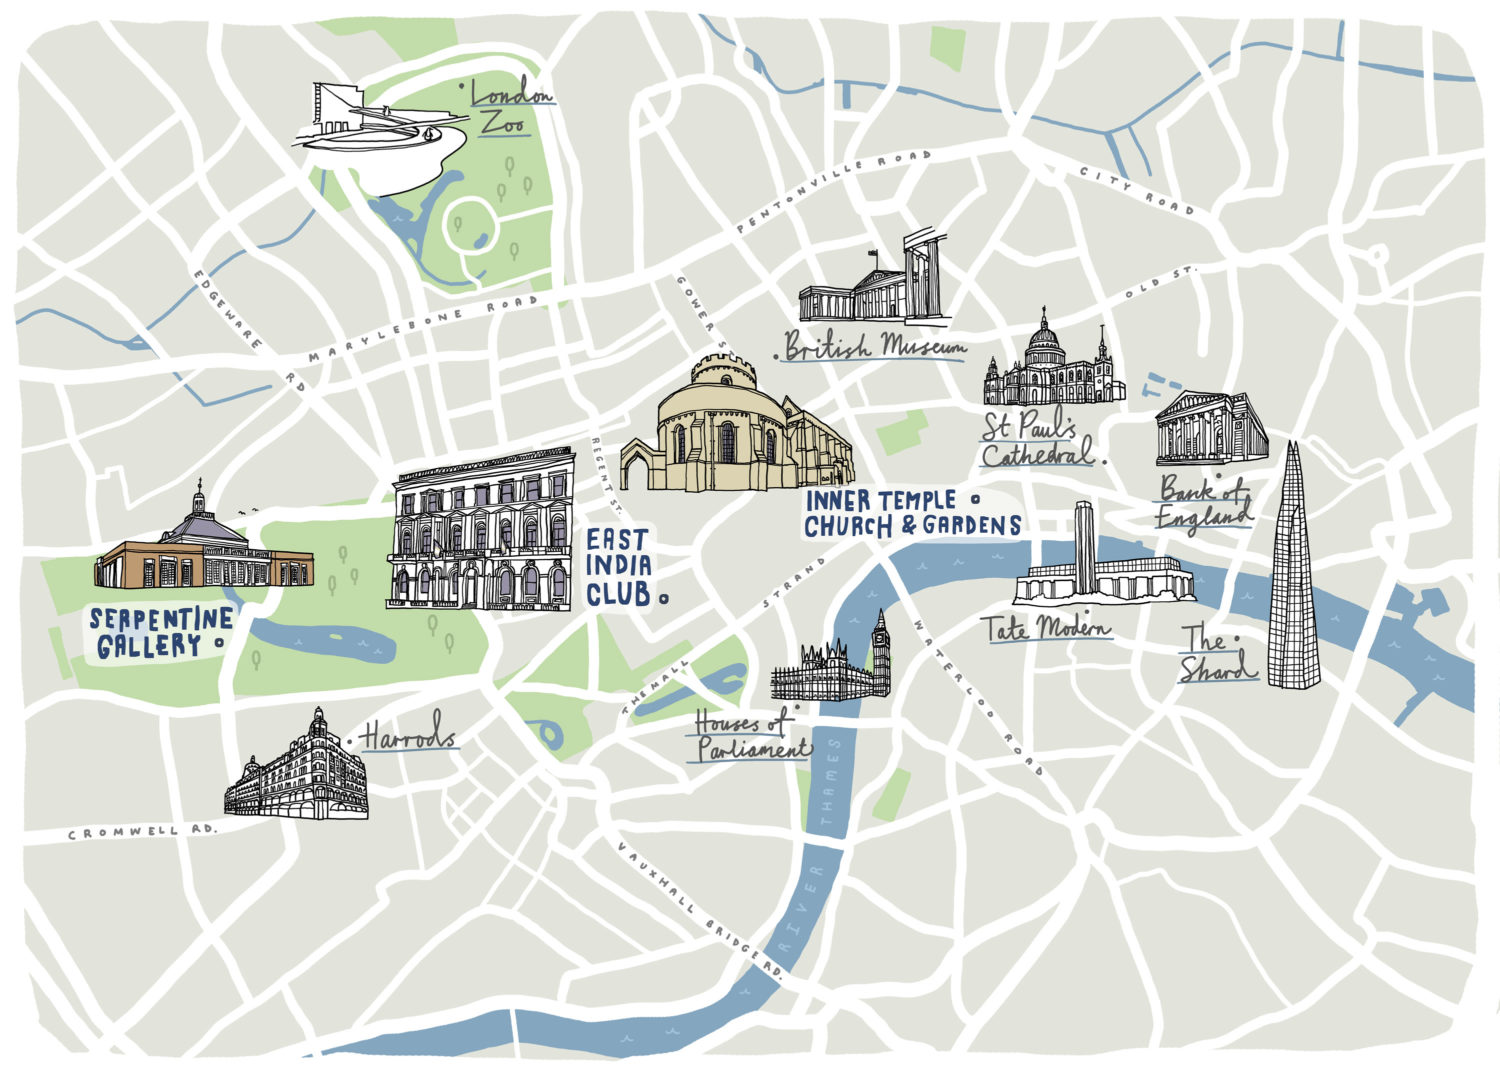 wedding map of london hyde park inner temple